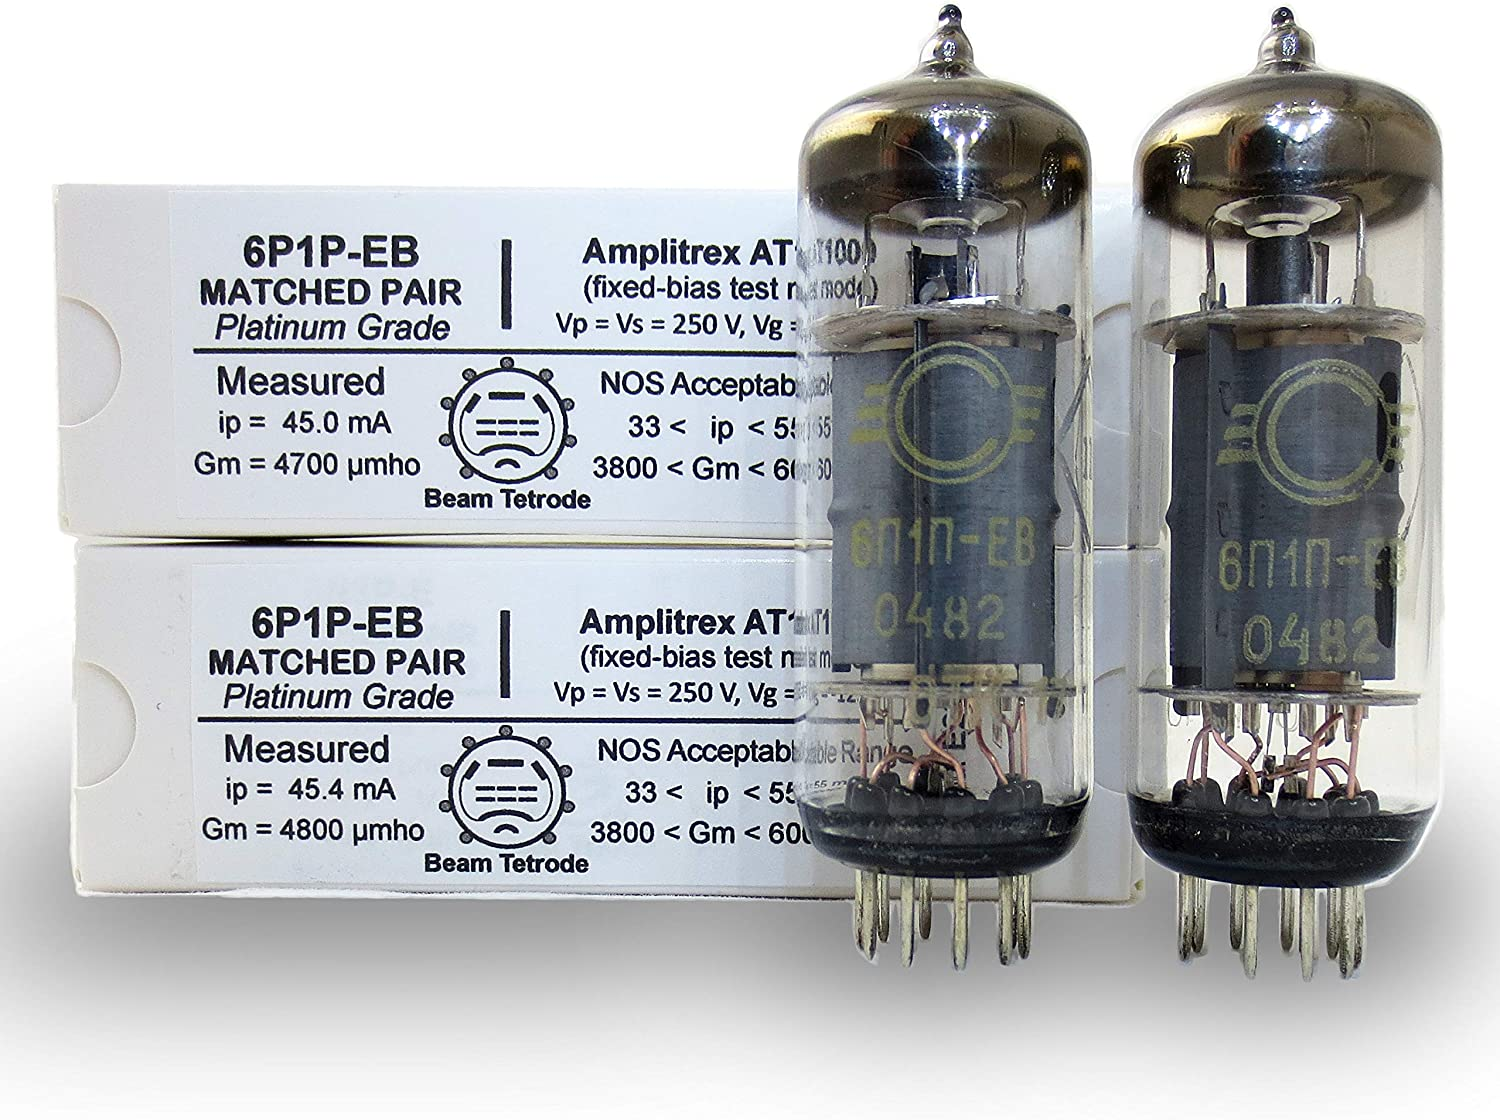 Riverstone Audio - 6P1P-EB Tested AND Matched Pair (2 tubes) - Vintage Russian Vacuum Tubes - Amplitrex Tested - Replacement for 9-PIN 6P1 / 6P1P Tubes - Platinum Grade Pair - (2 tubes) 6P1P-EB